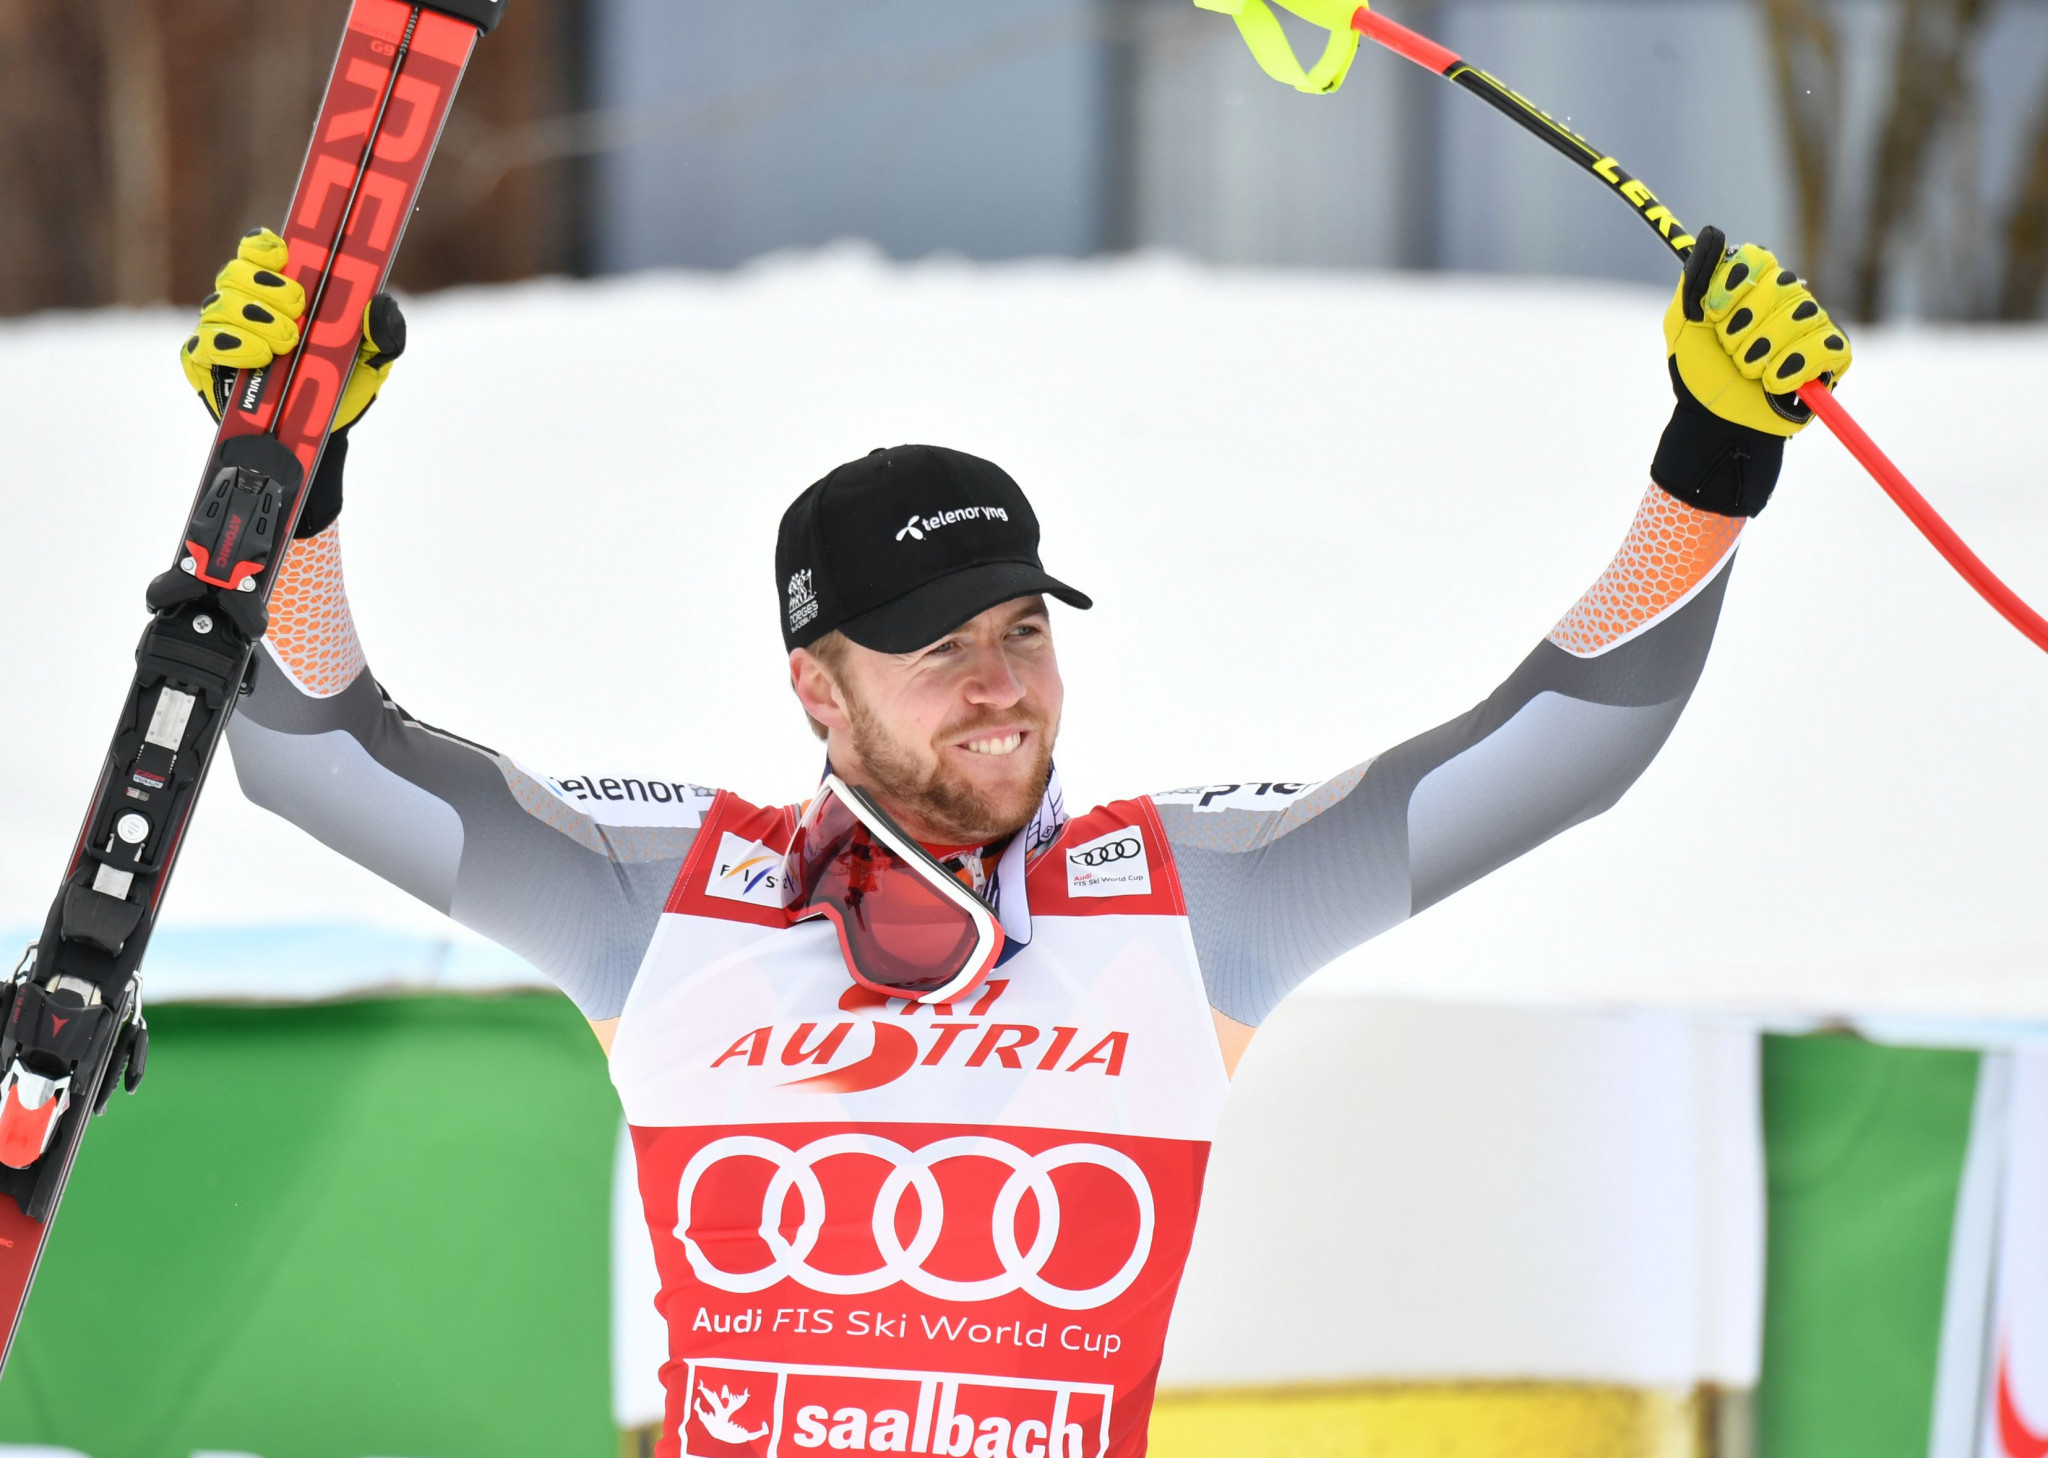 Kilde claims first win of season to take overall FIS Alpine Ski World Cup lead